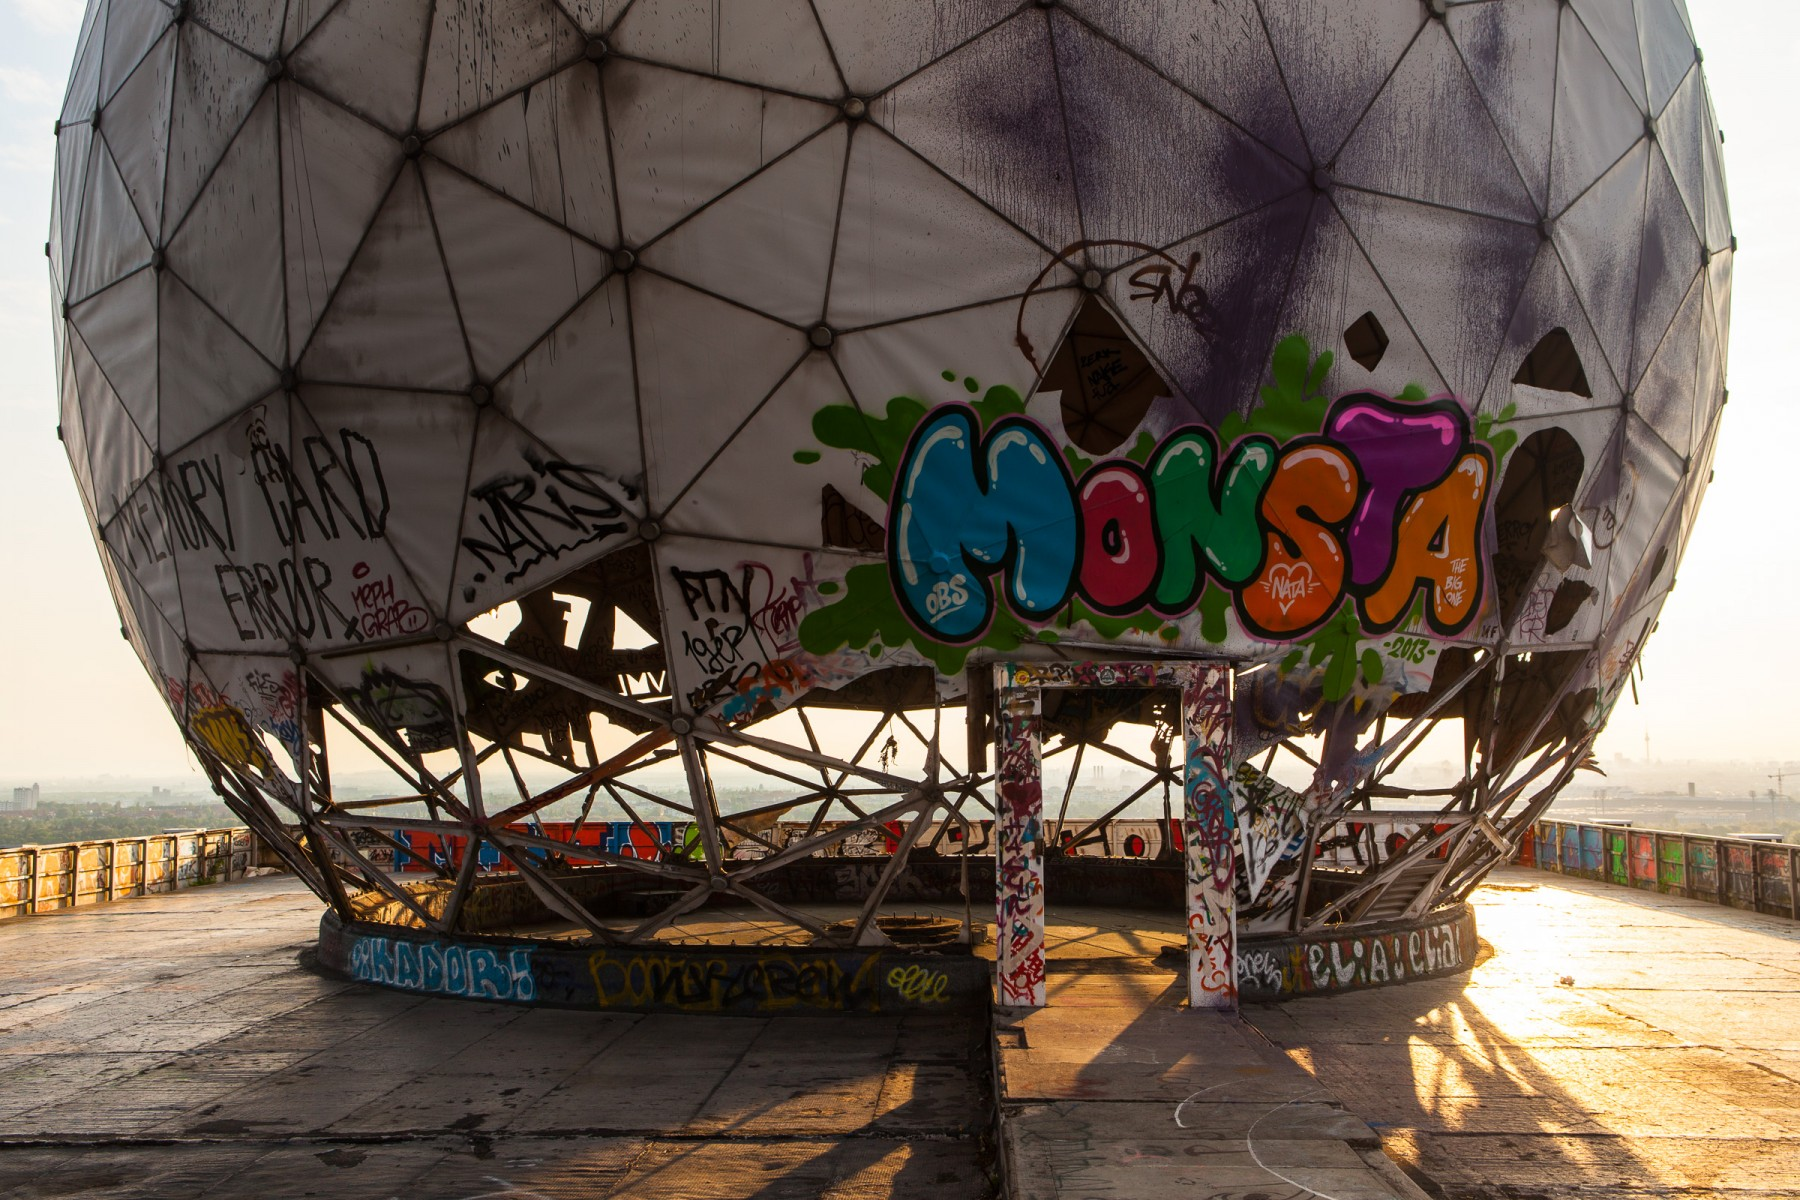 Graffiti on one of the domes at Teufelsberg